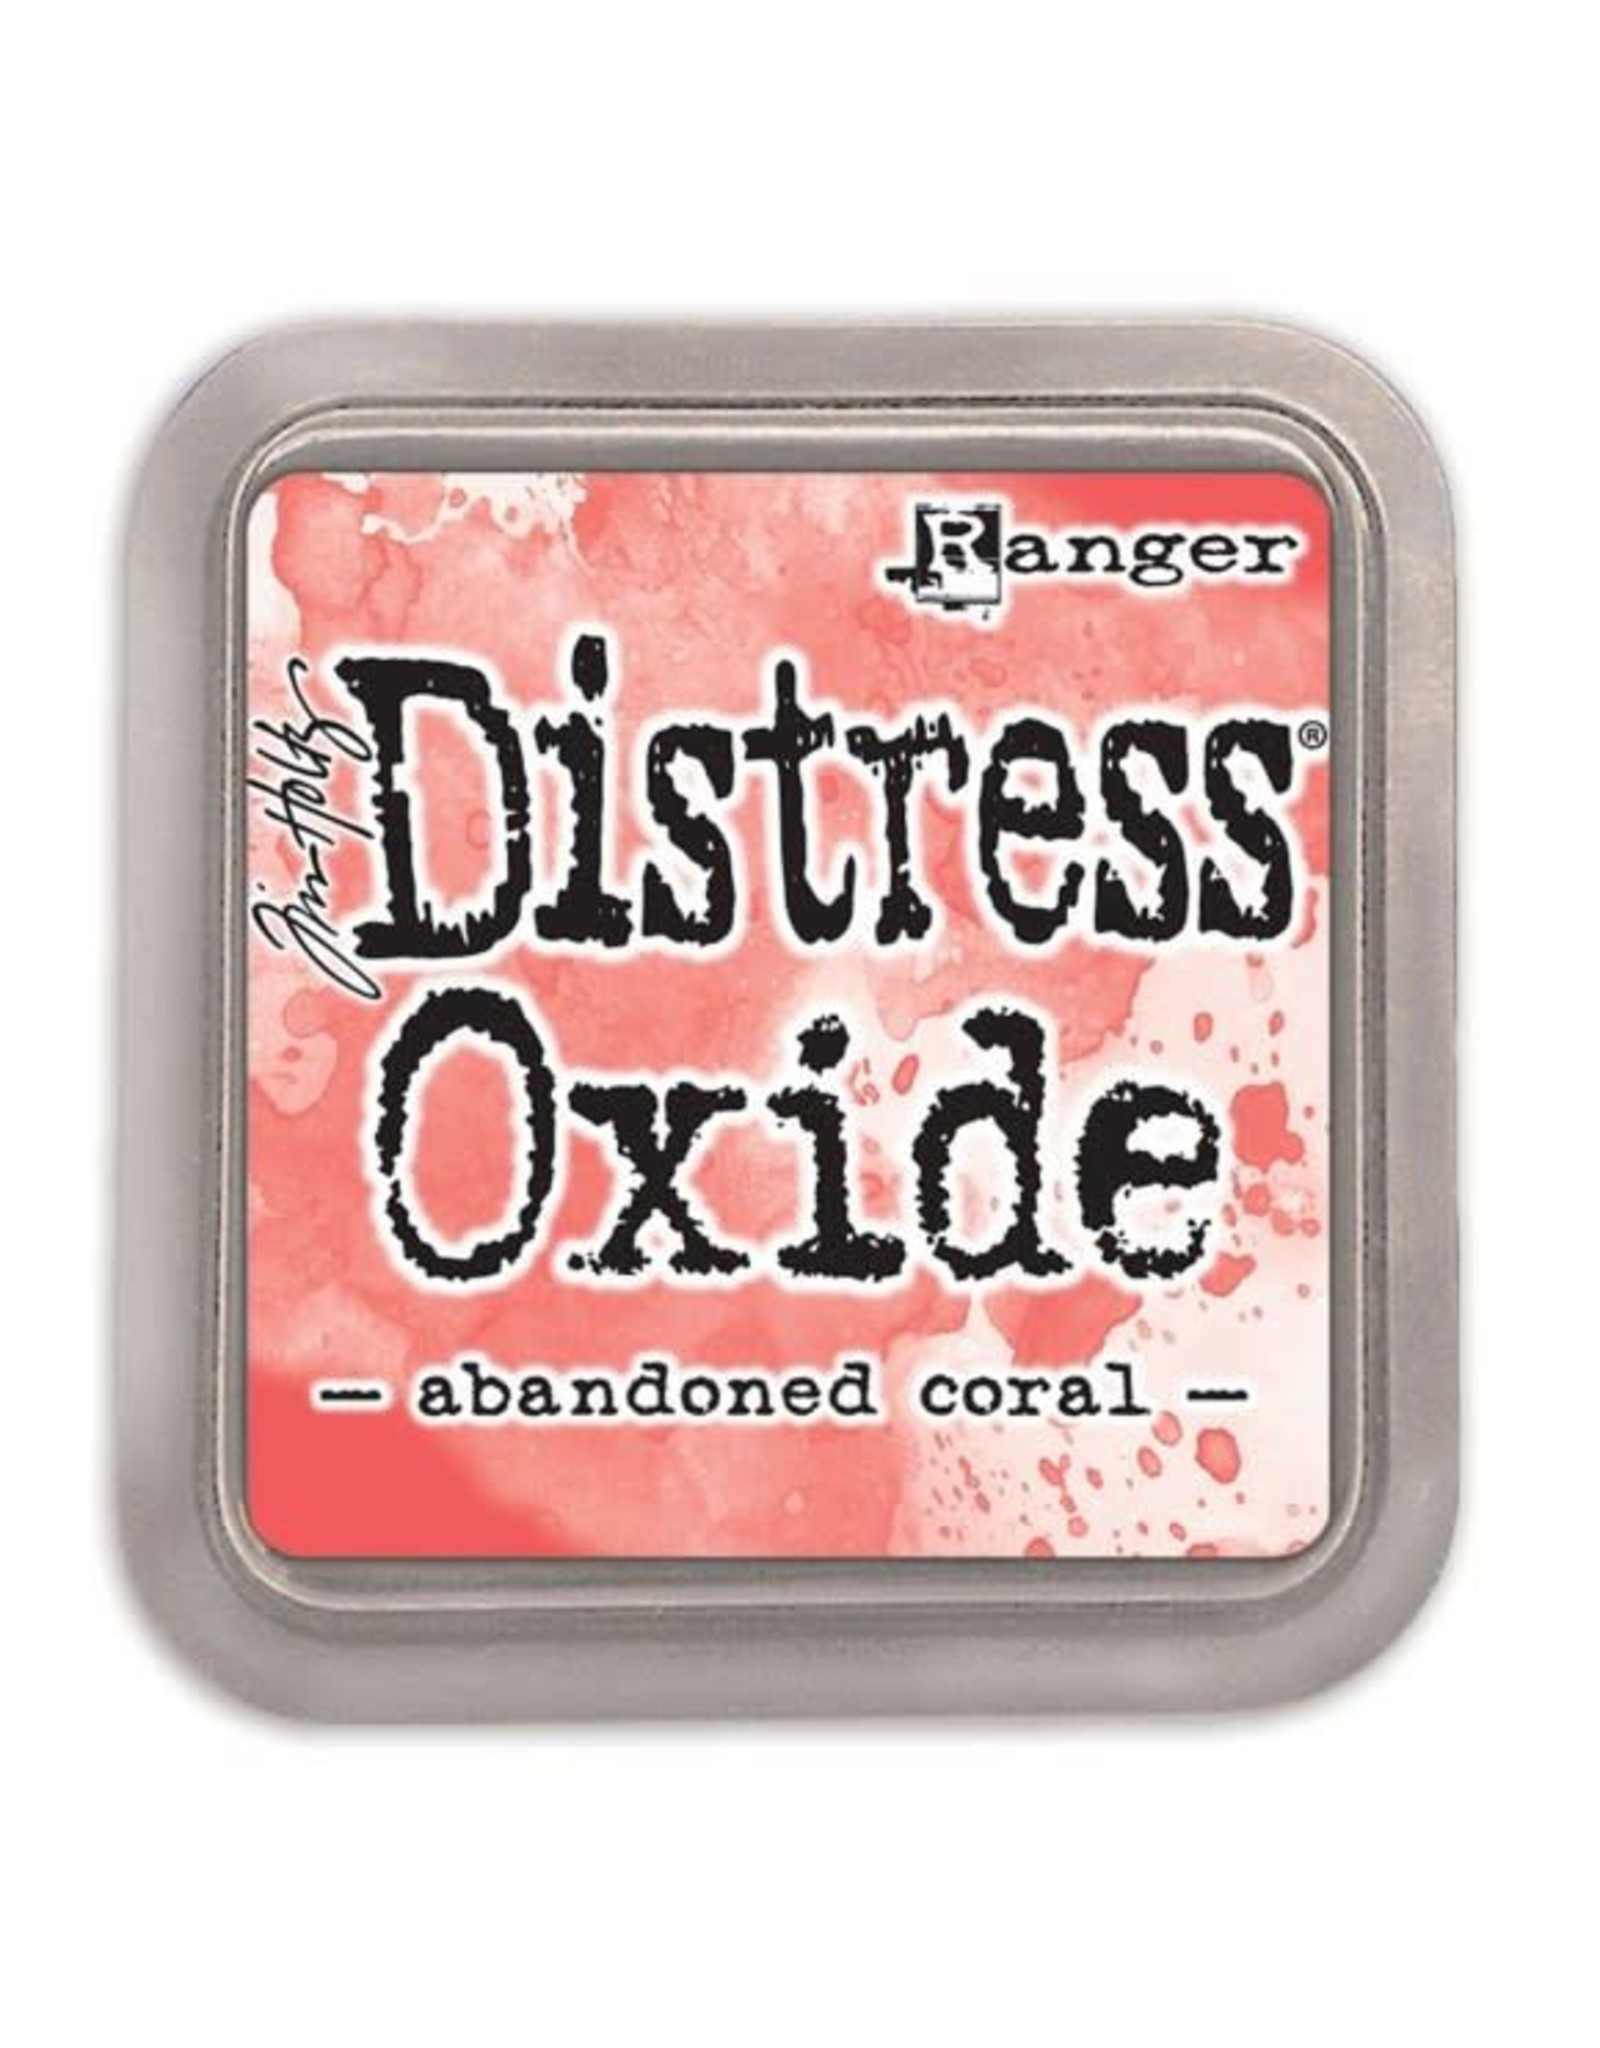 Ranger Distress Oxide Ranger Distress Oxide - abandoned coral